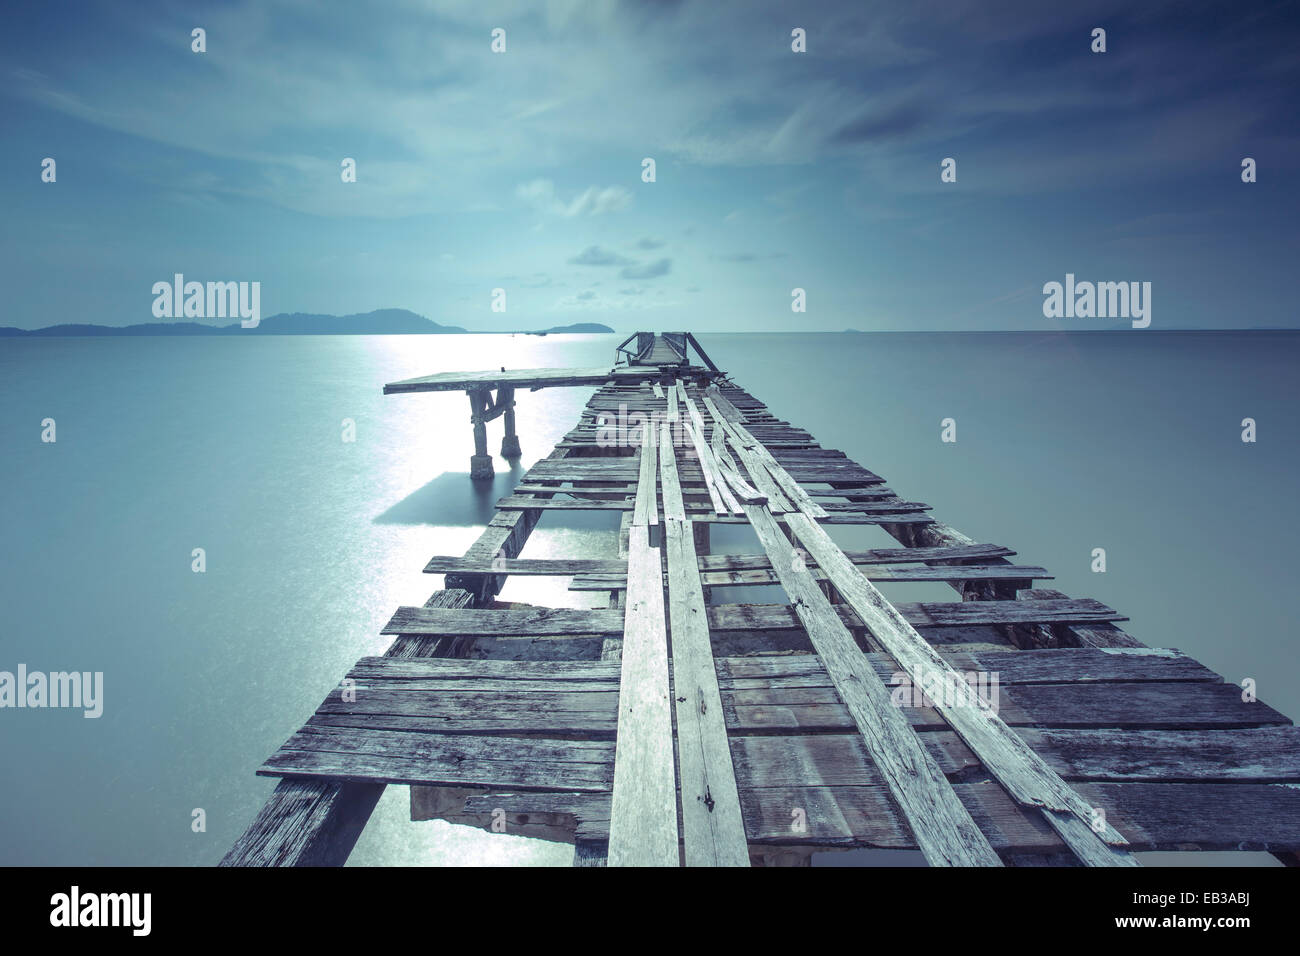 Indonesia, Kalimantan, West Kalimantan, Sungai Raya, Mempawah - Singkawang, Pier at Kijing beach - Stock Image